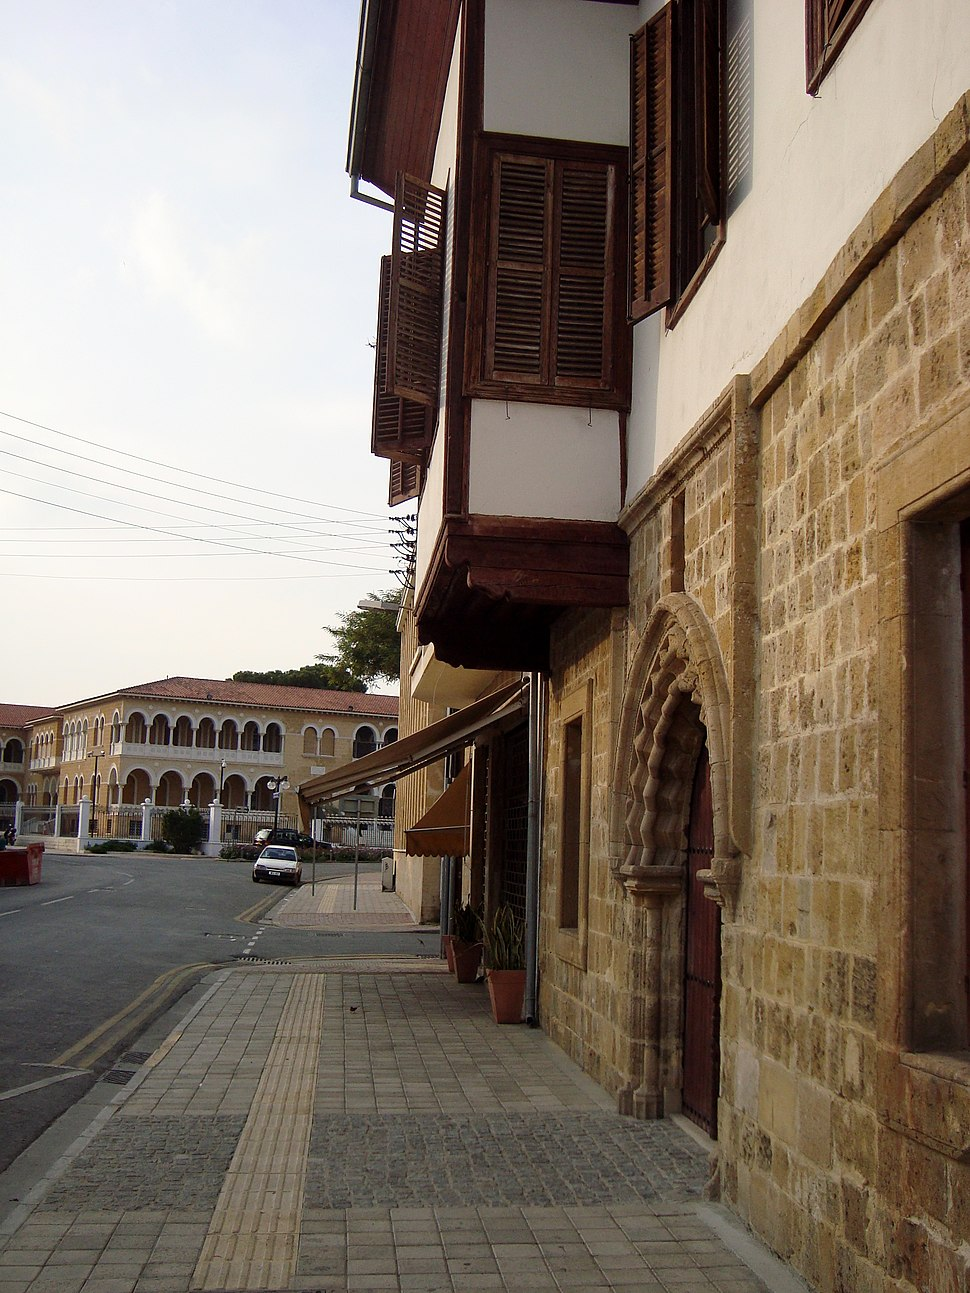 15th century house in Nicosia Cyprus